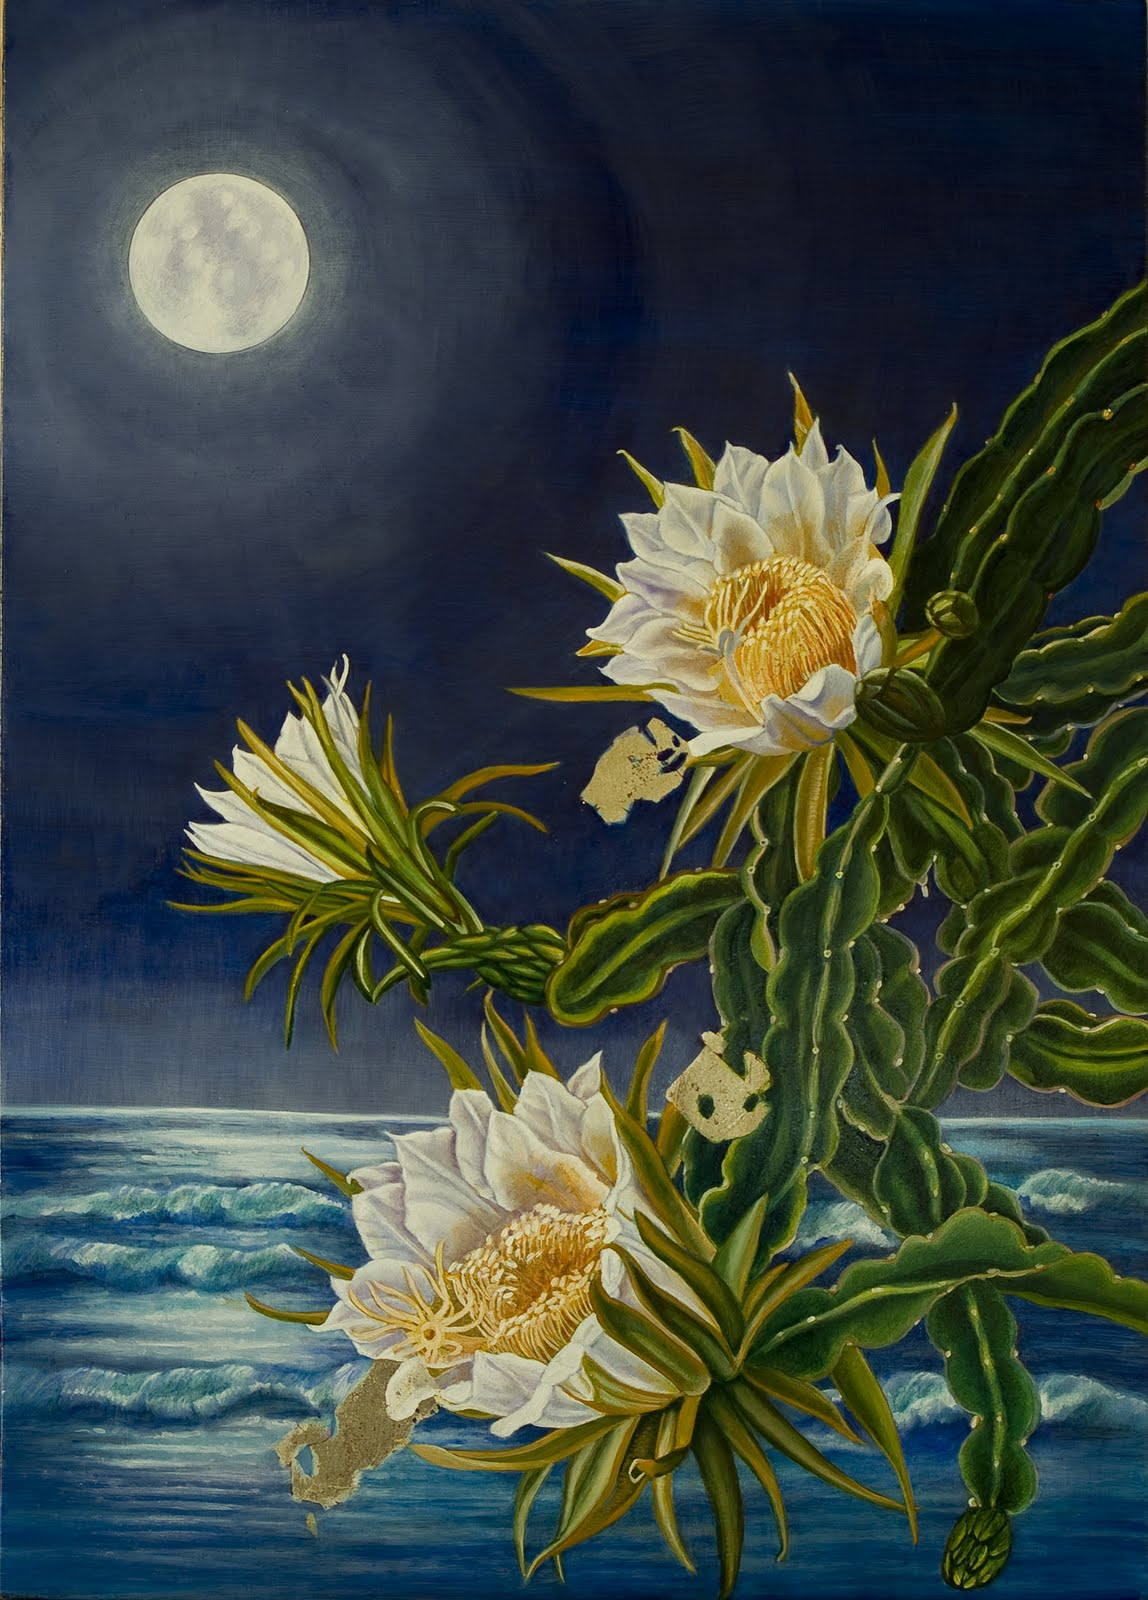 The Creative Native Project Mystical Moonlight Bloom